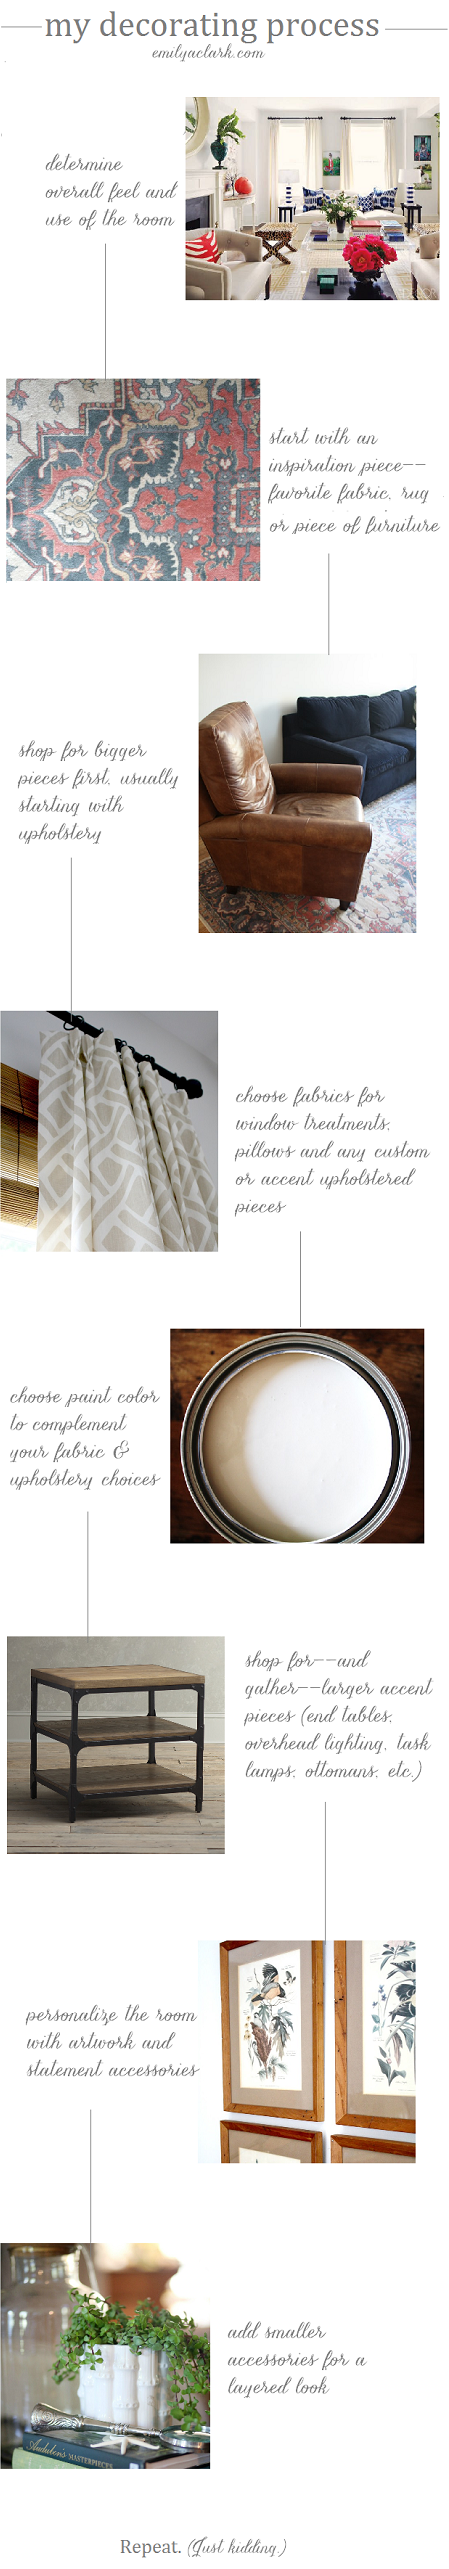 My decorating process (via EmilyAClark.com)